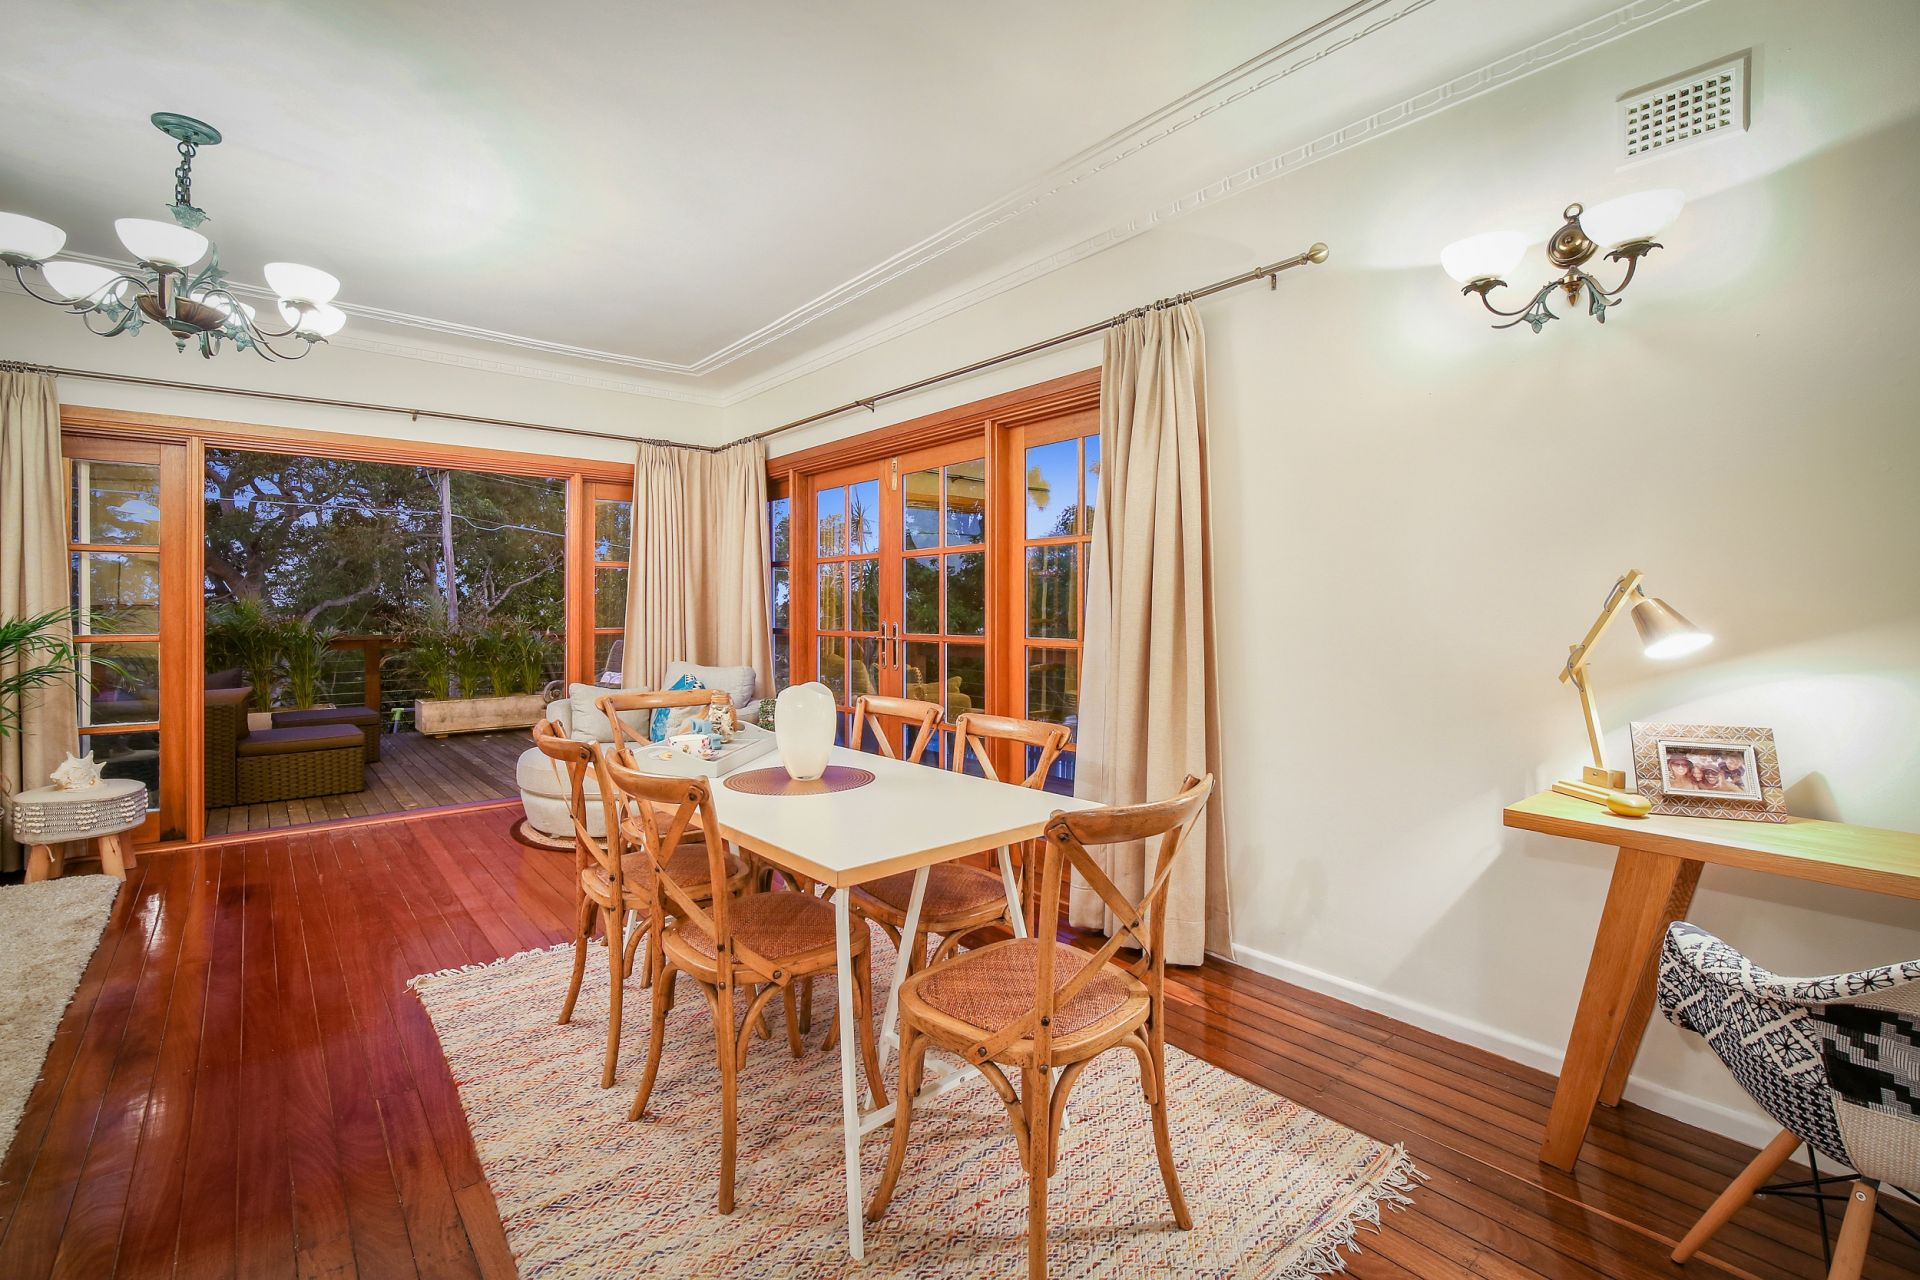 Real Estate For Sale 2 Prince Edward Road Seaforth Nsw